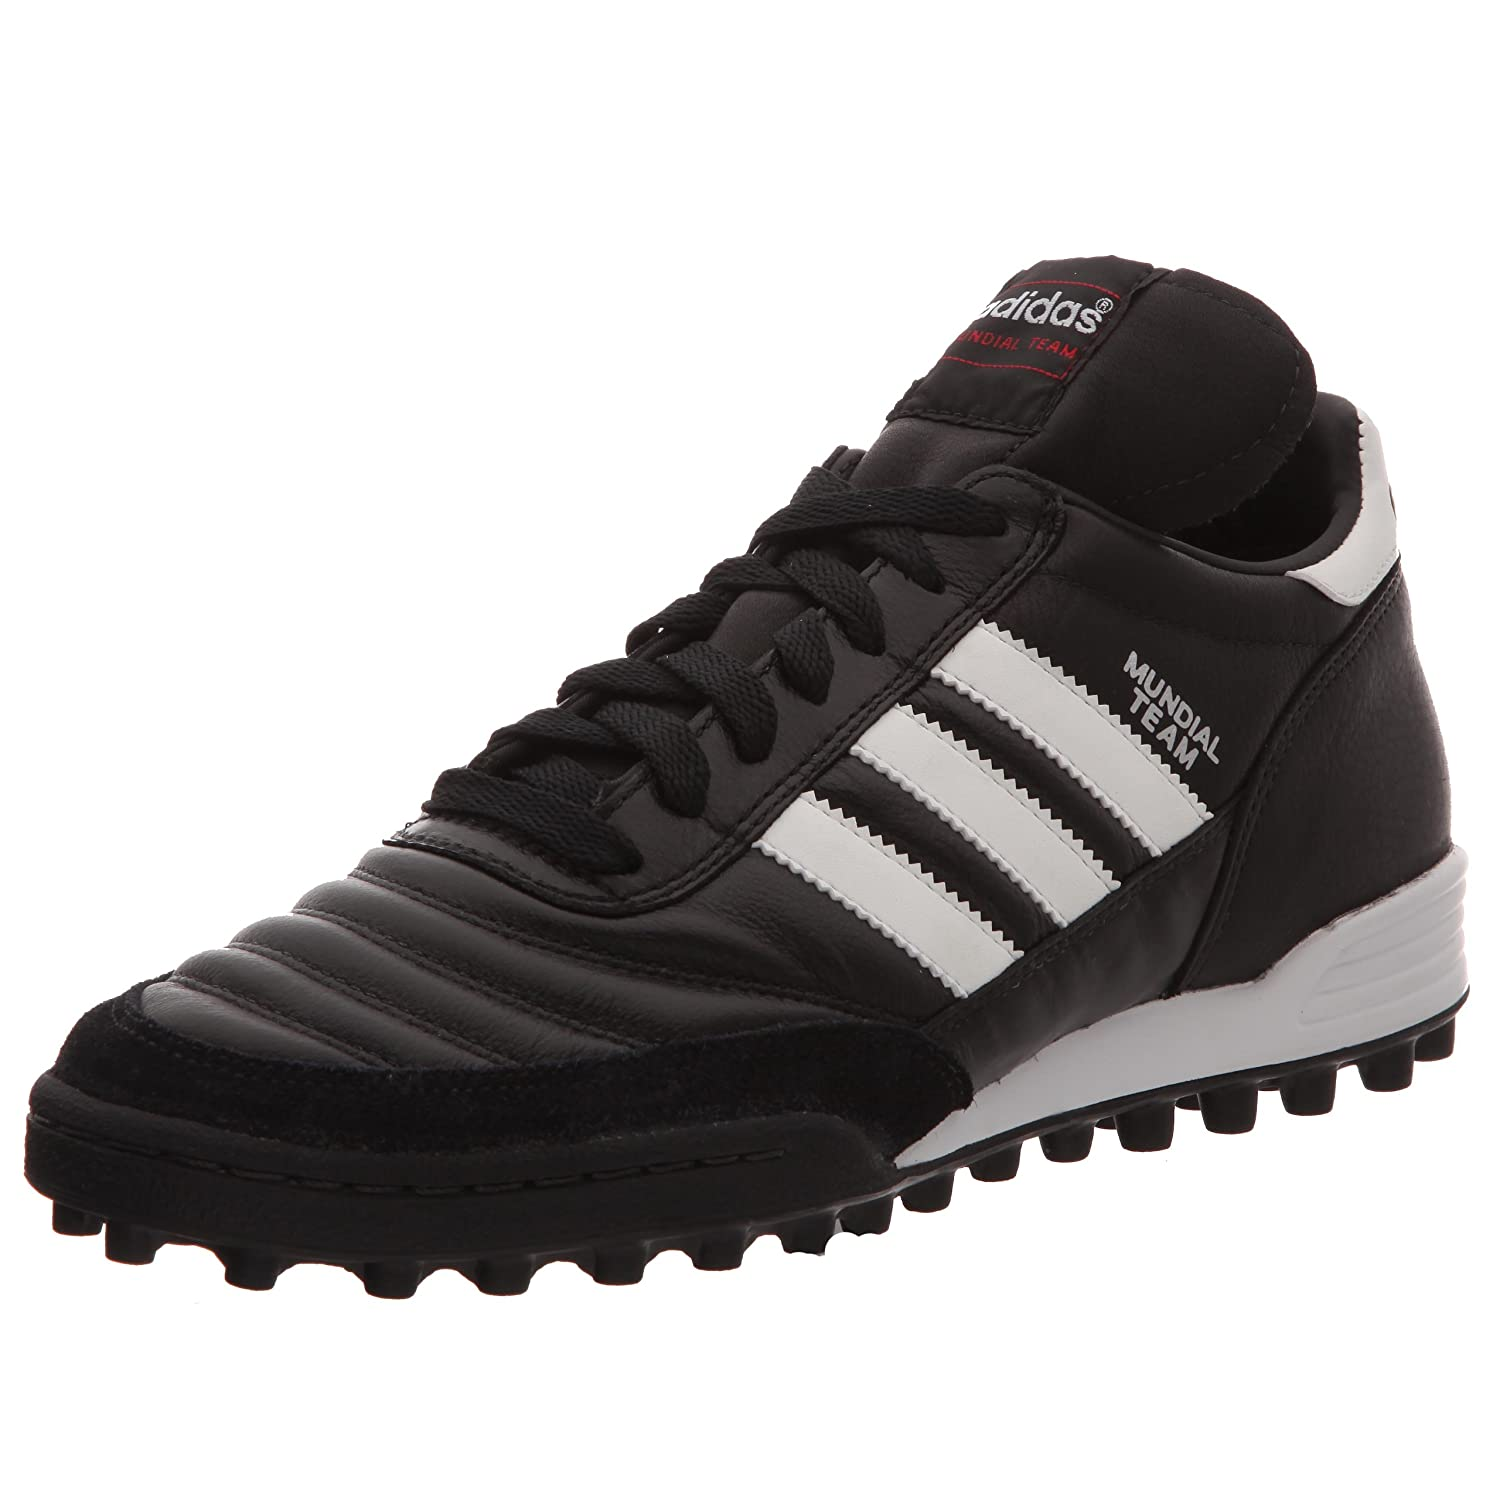 adidas Mundial Team, Chaussures de football homme: Amazon.fr: Chaussures et  Sacs